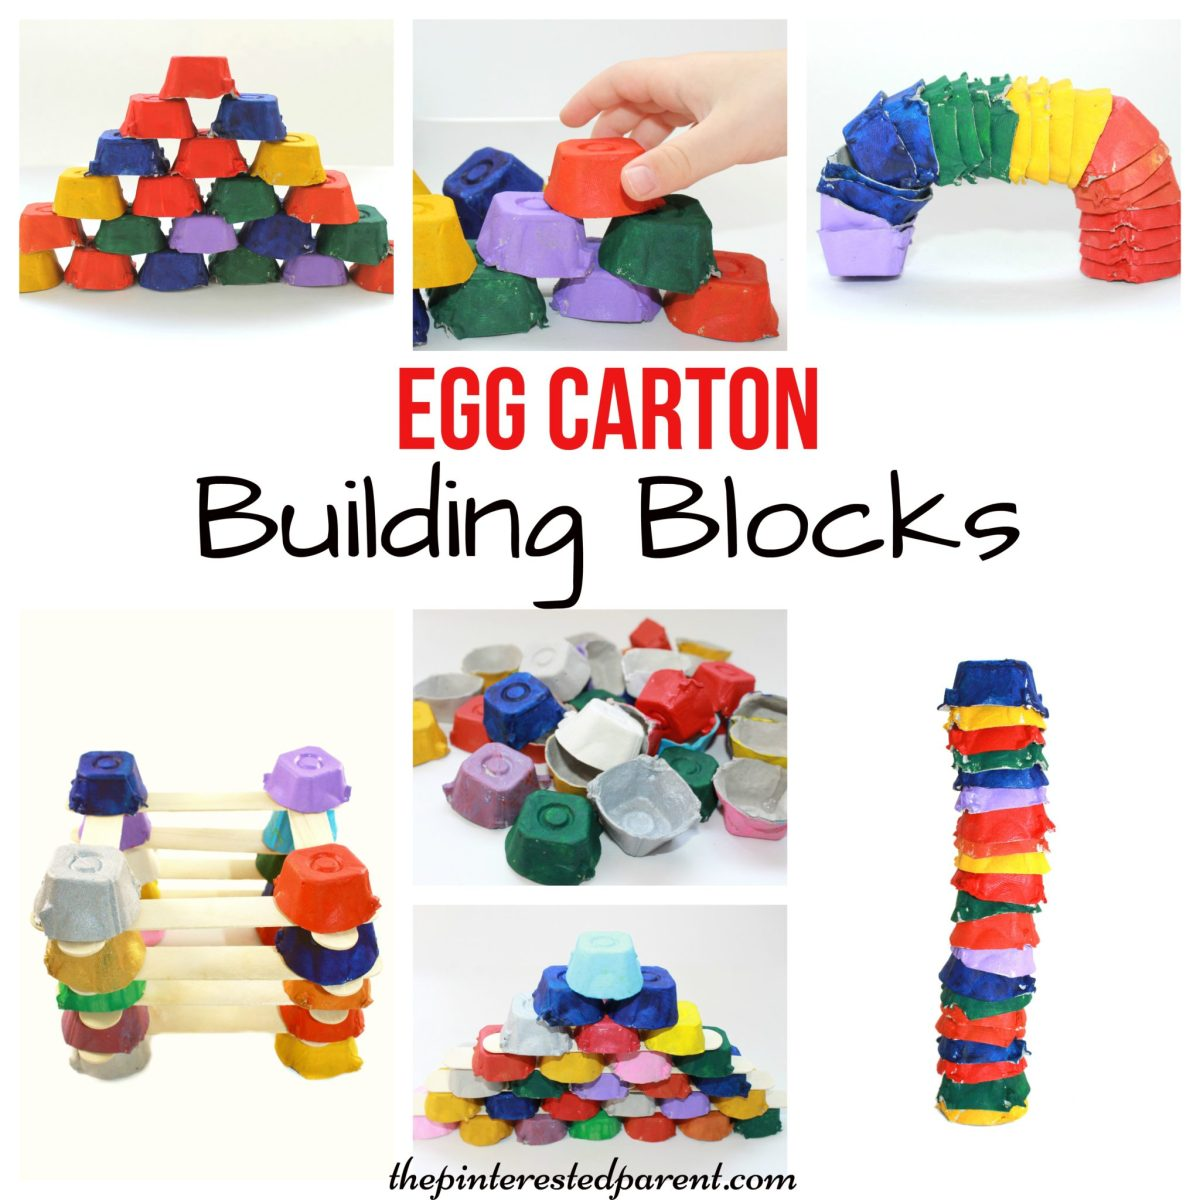 Egg Carton Building Blocks